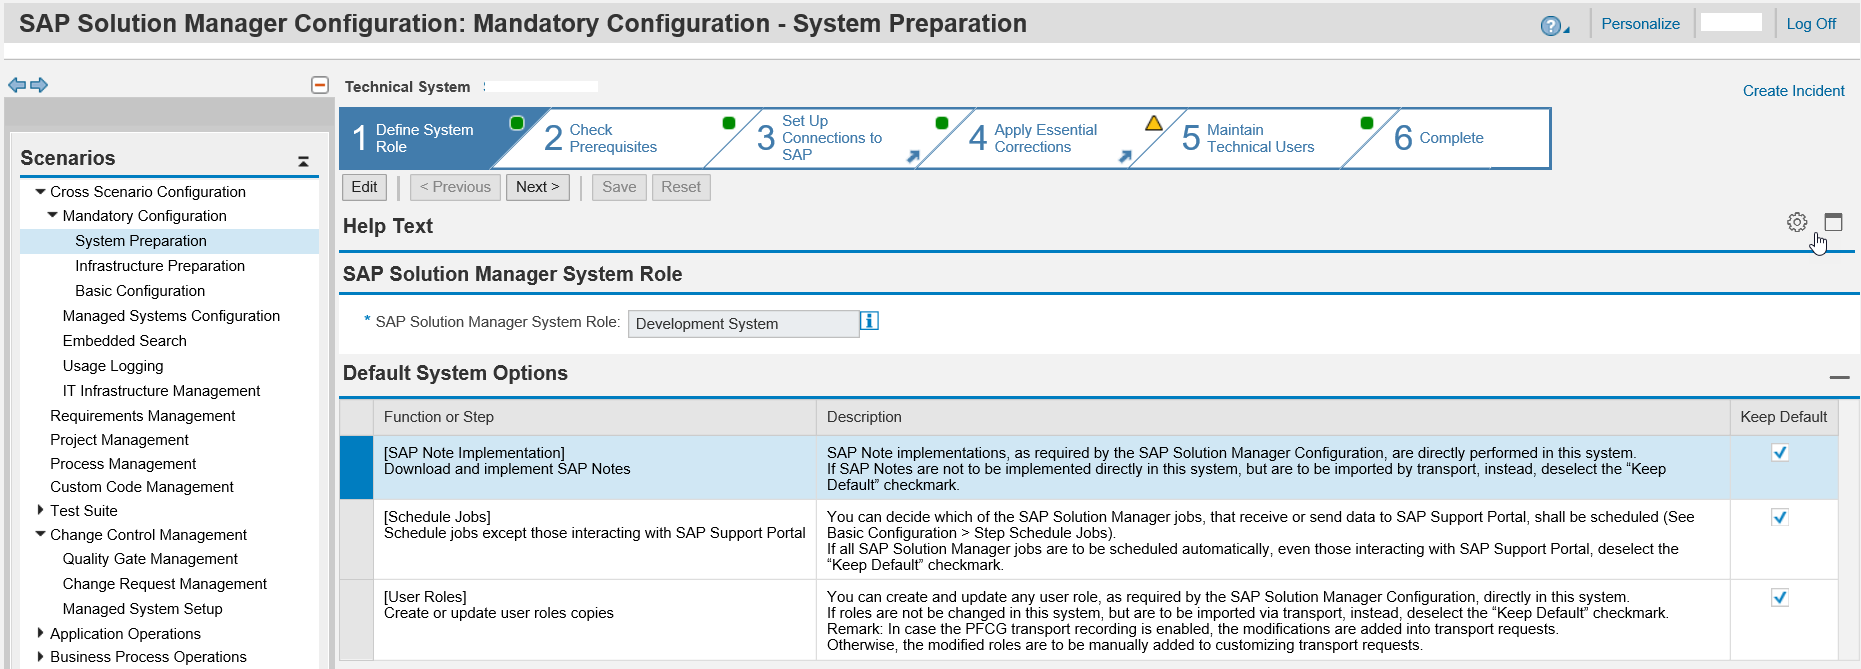 How to configure SAP Solution Manager 7 2 - Change Request